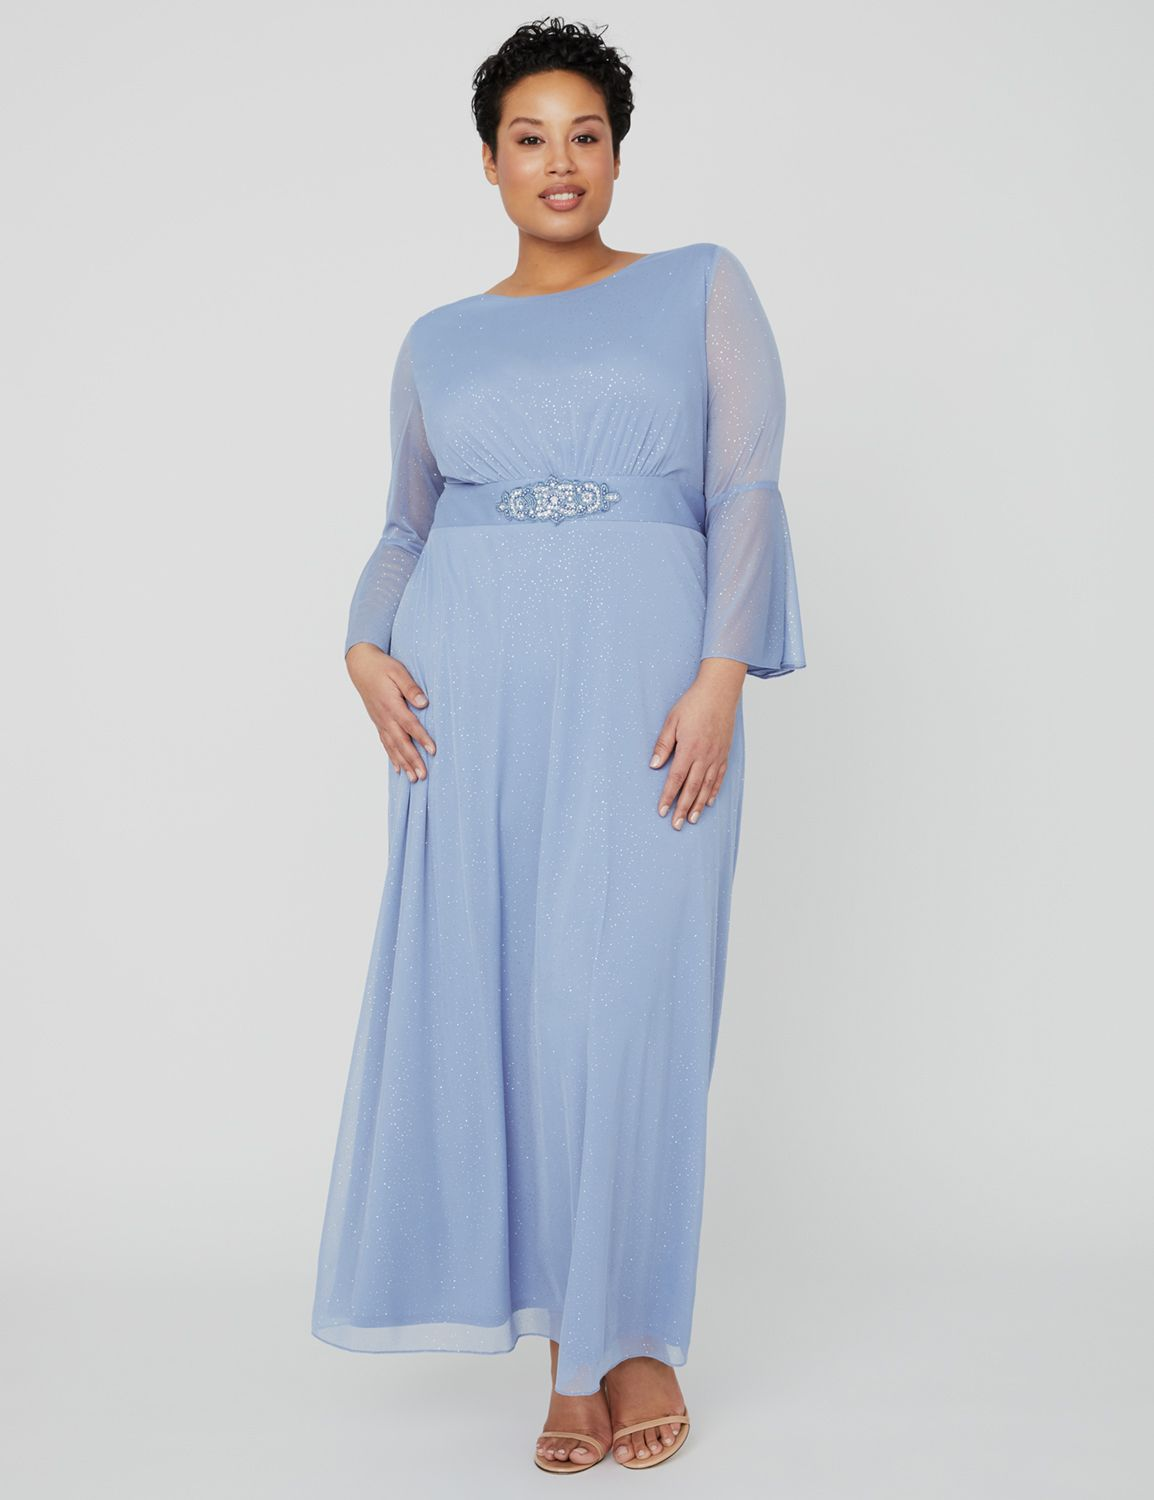 Twilight Sky Gown 1090991 Empire Waist Dress with Wai MP-300099840